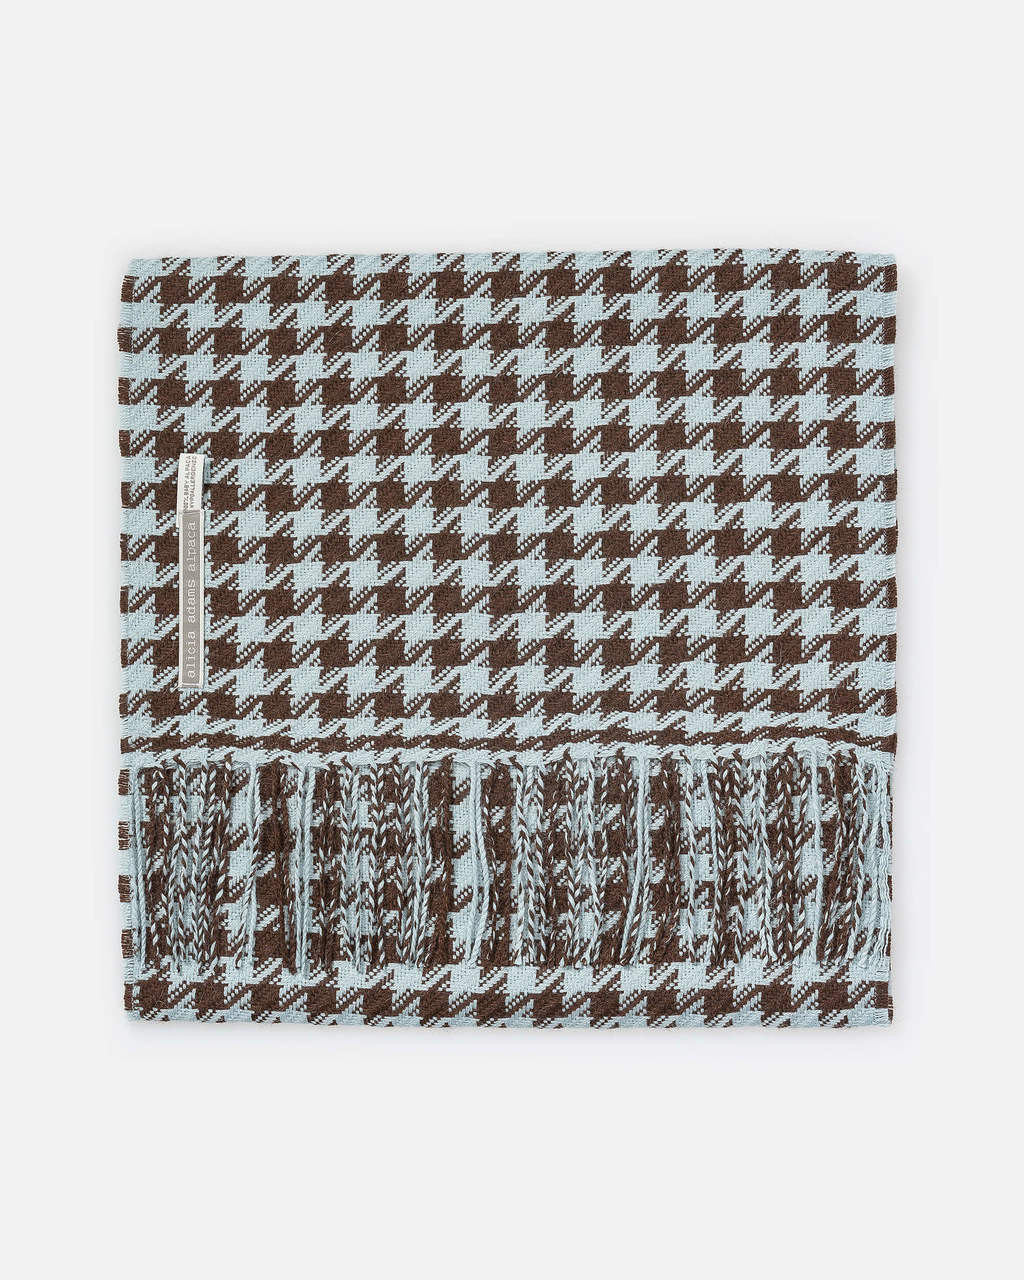 Alicia Adams Alpaca Houndstooth Scarf, alpaca scarf, 100 alpaca scarf, alpaca scarf mens, alpaca vs cashmere, light brown and light blue alpaca scarf